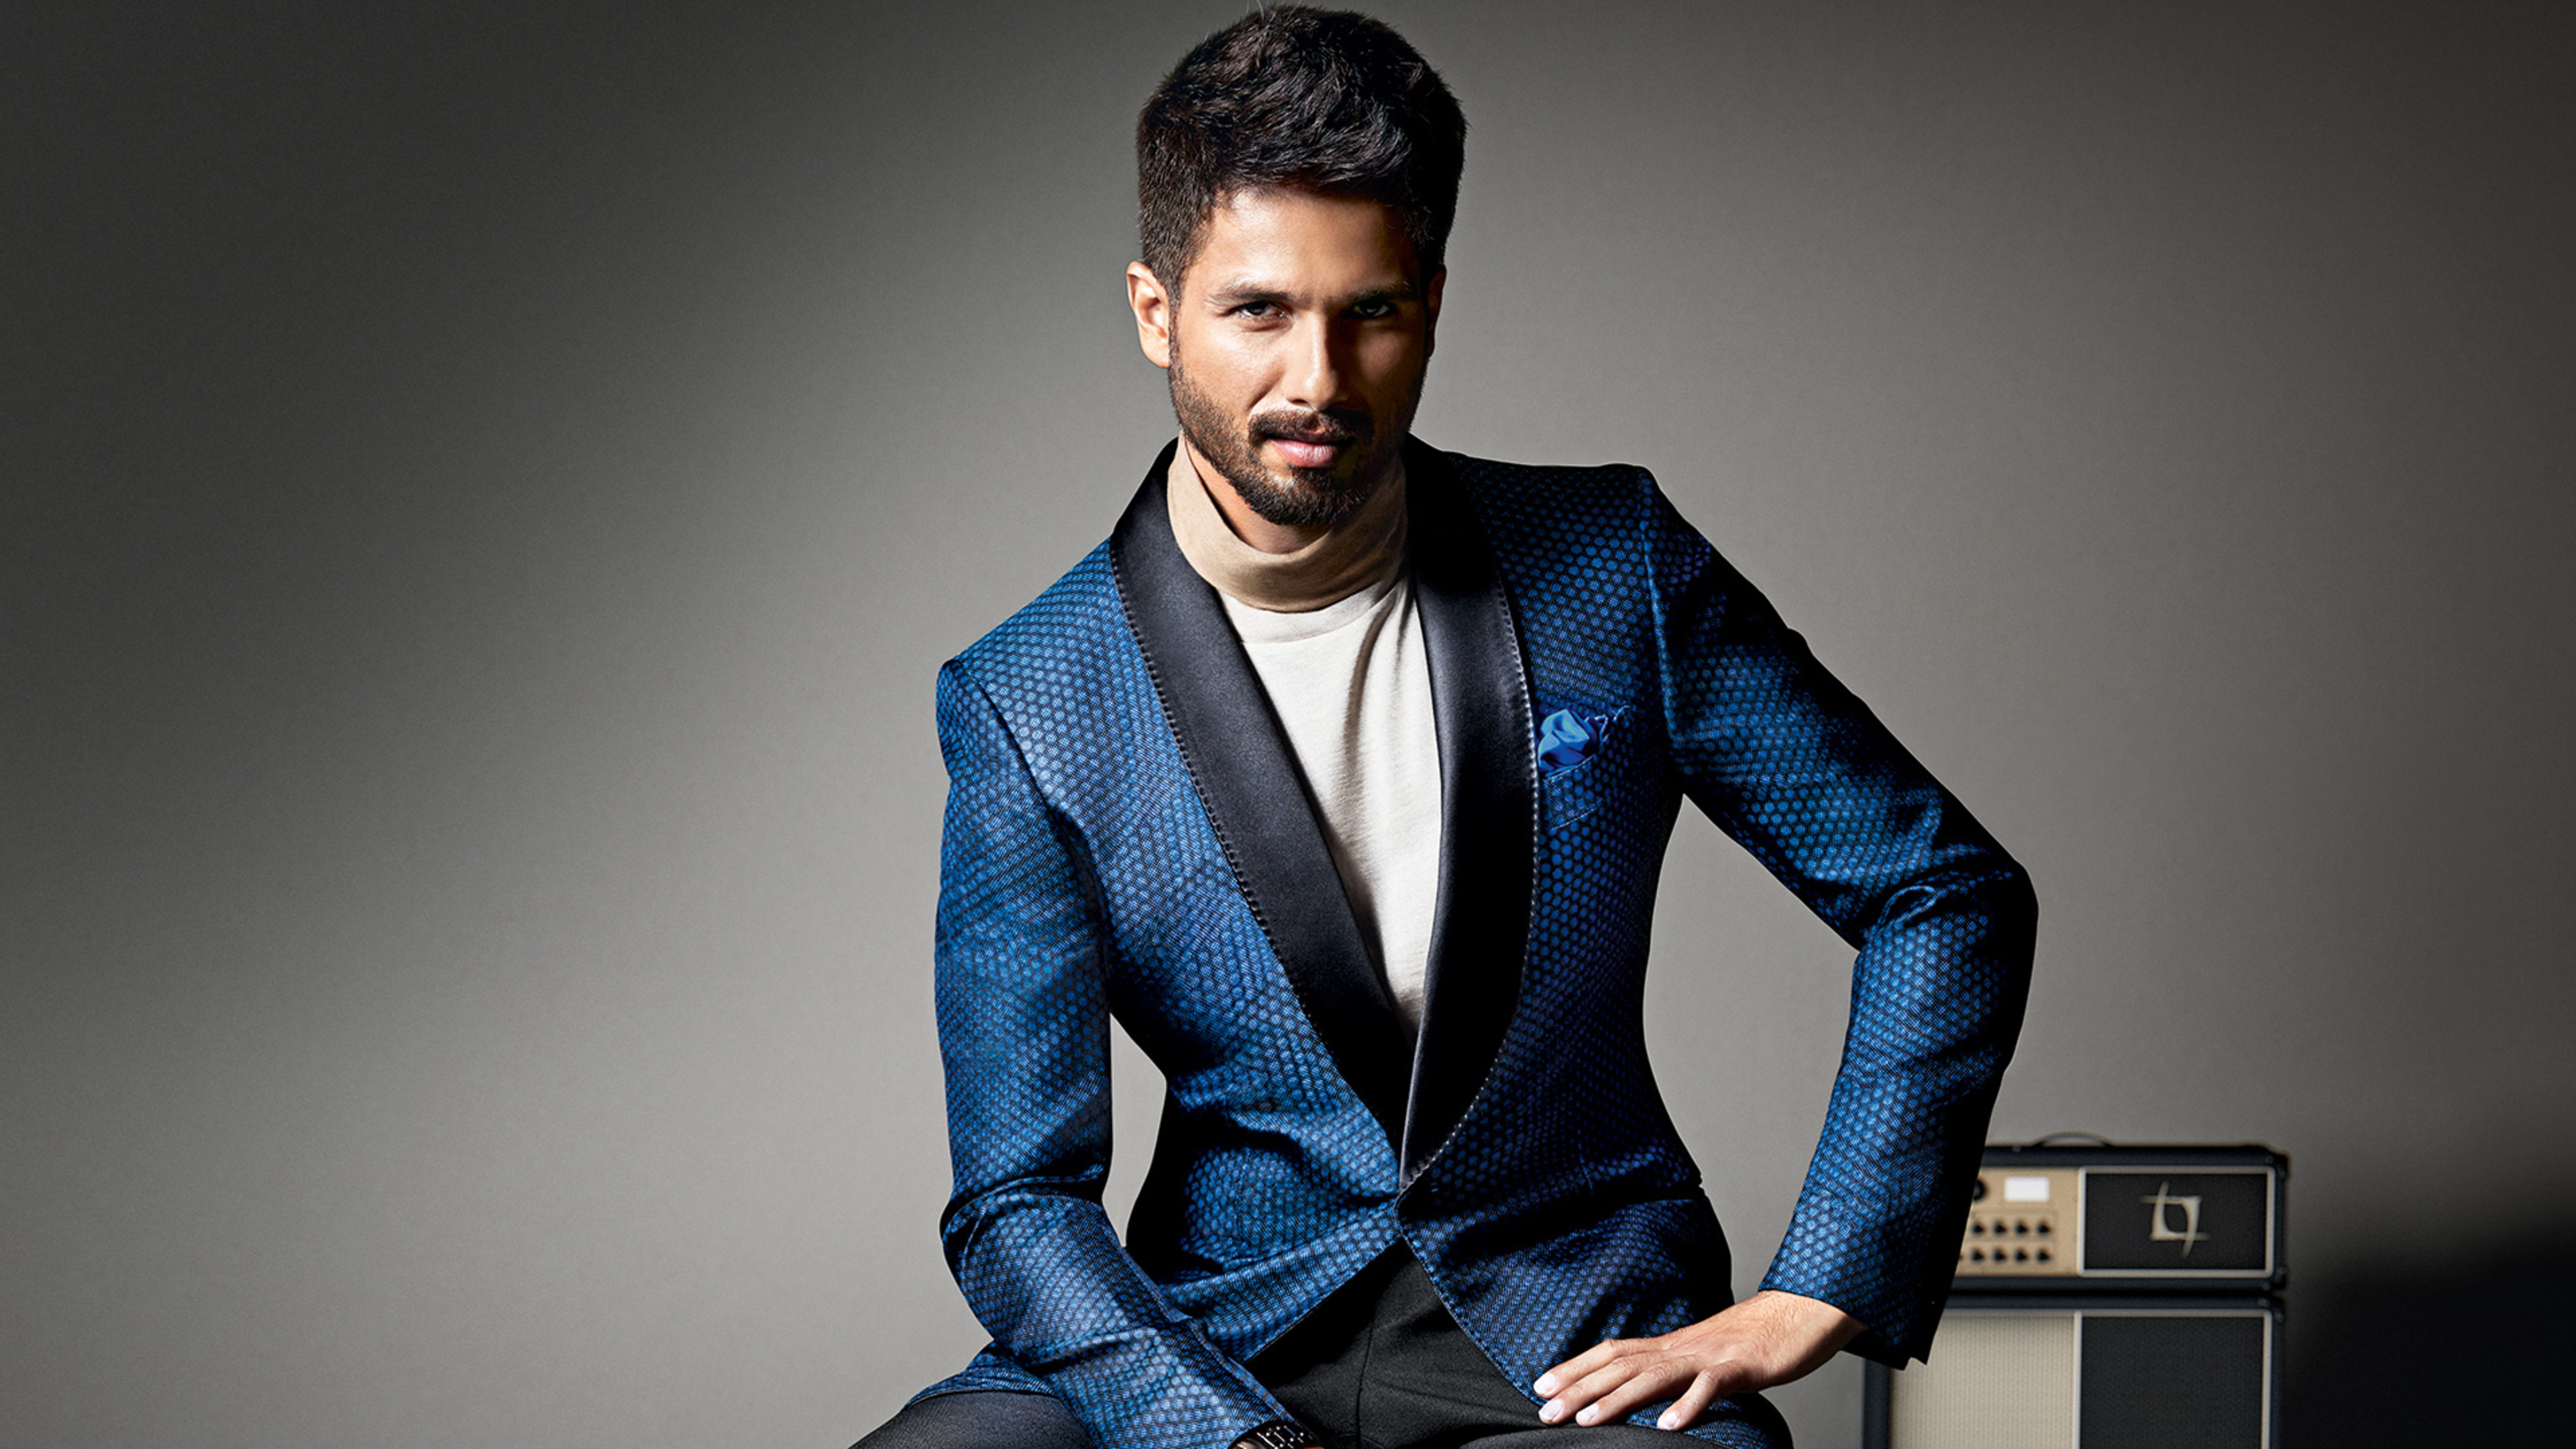 3840x2160 shahid kapoor 4k hd 4k wallpapers, images, backgrounds